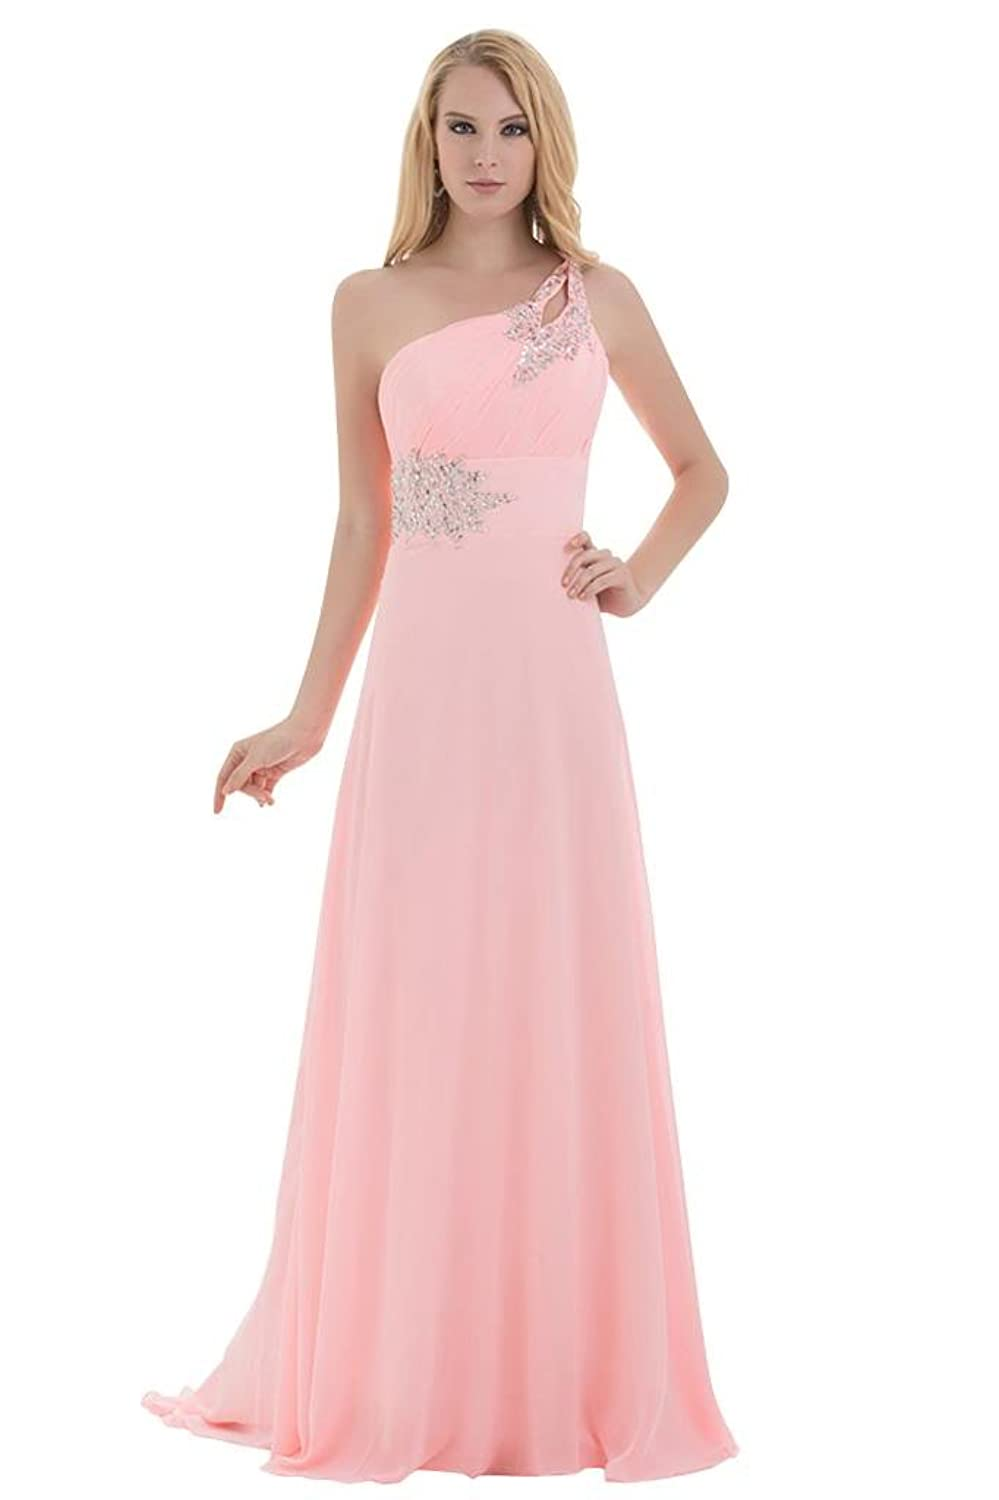 GEORGE BRIDE Spanish Sweetheart One-Shoulder Ruched Bodice Evening Dress